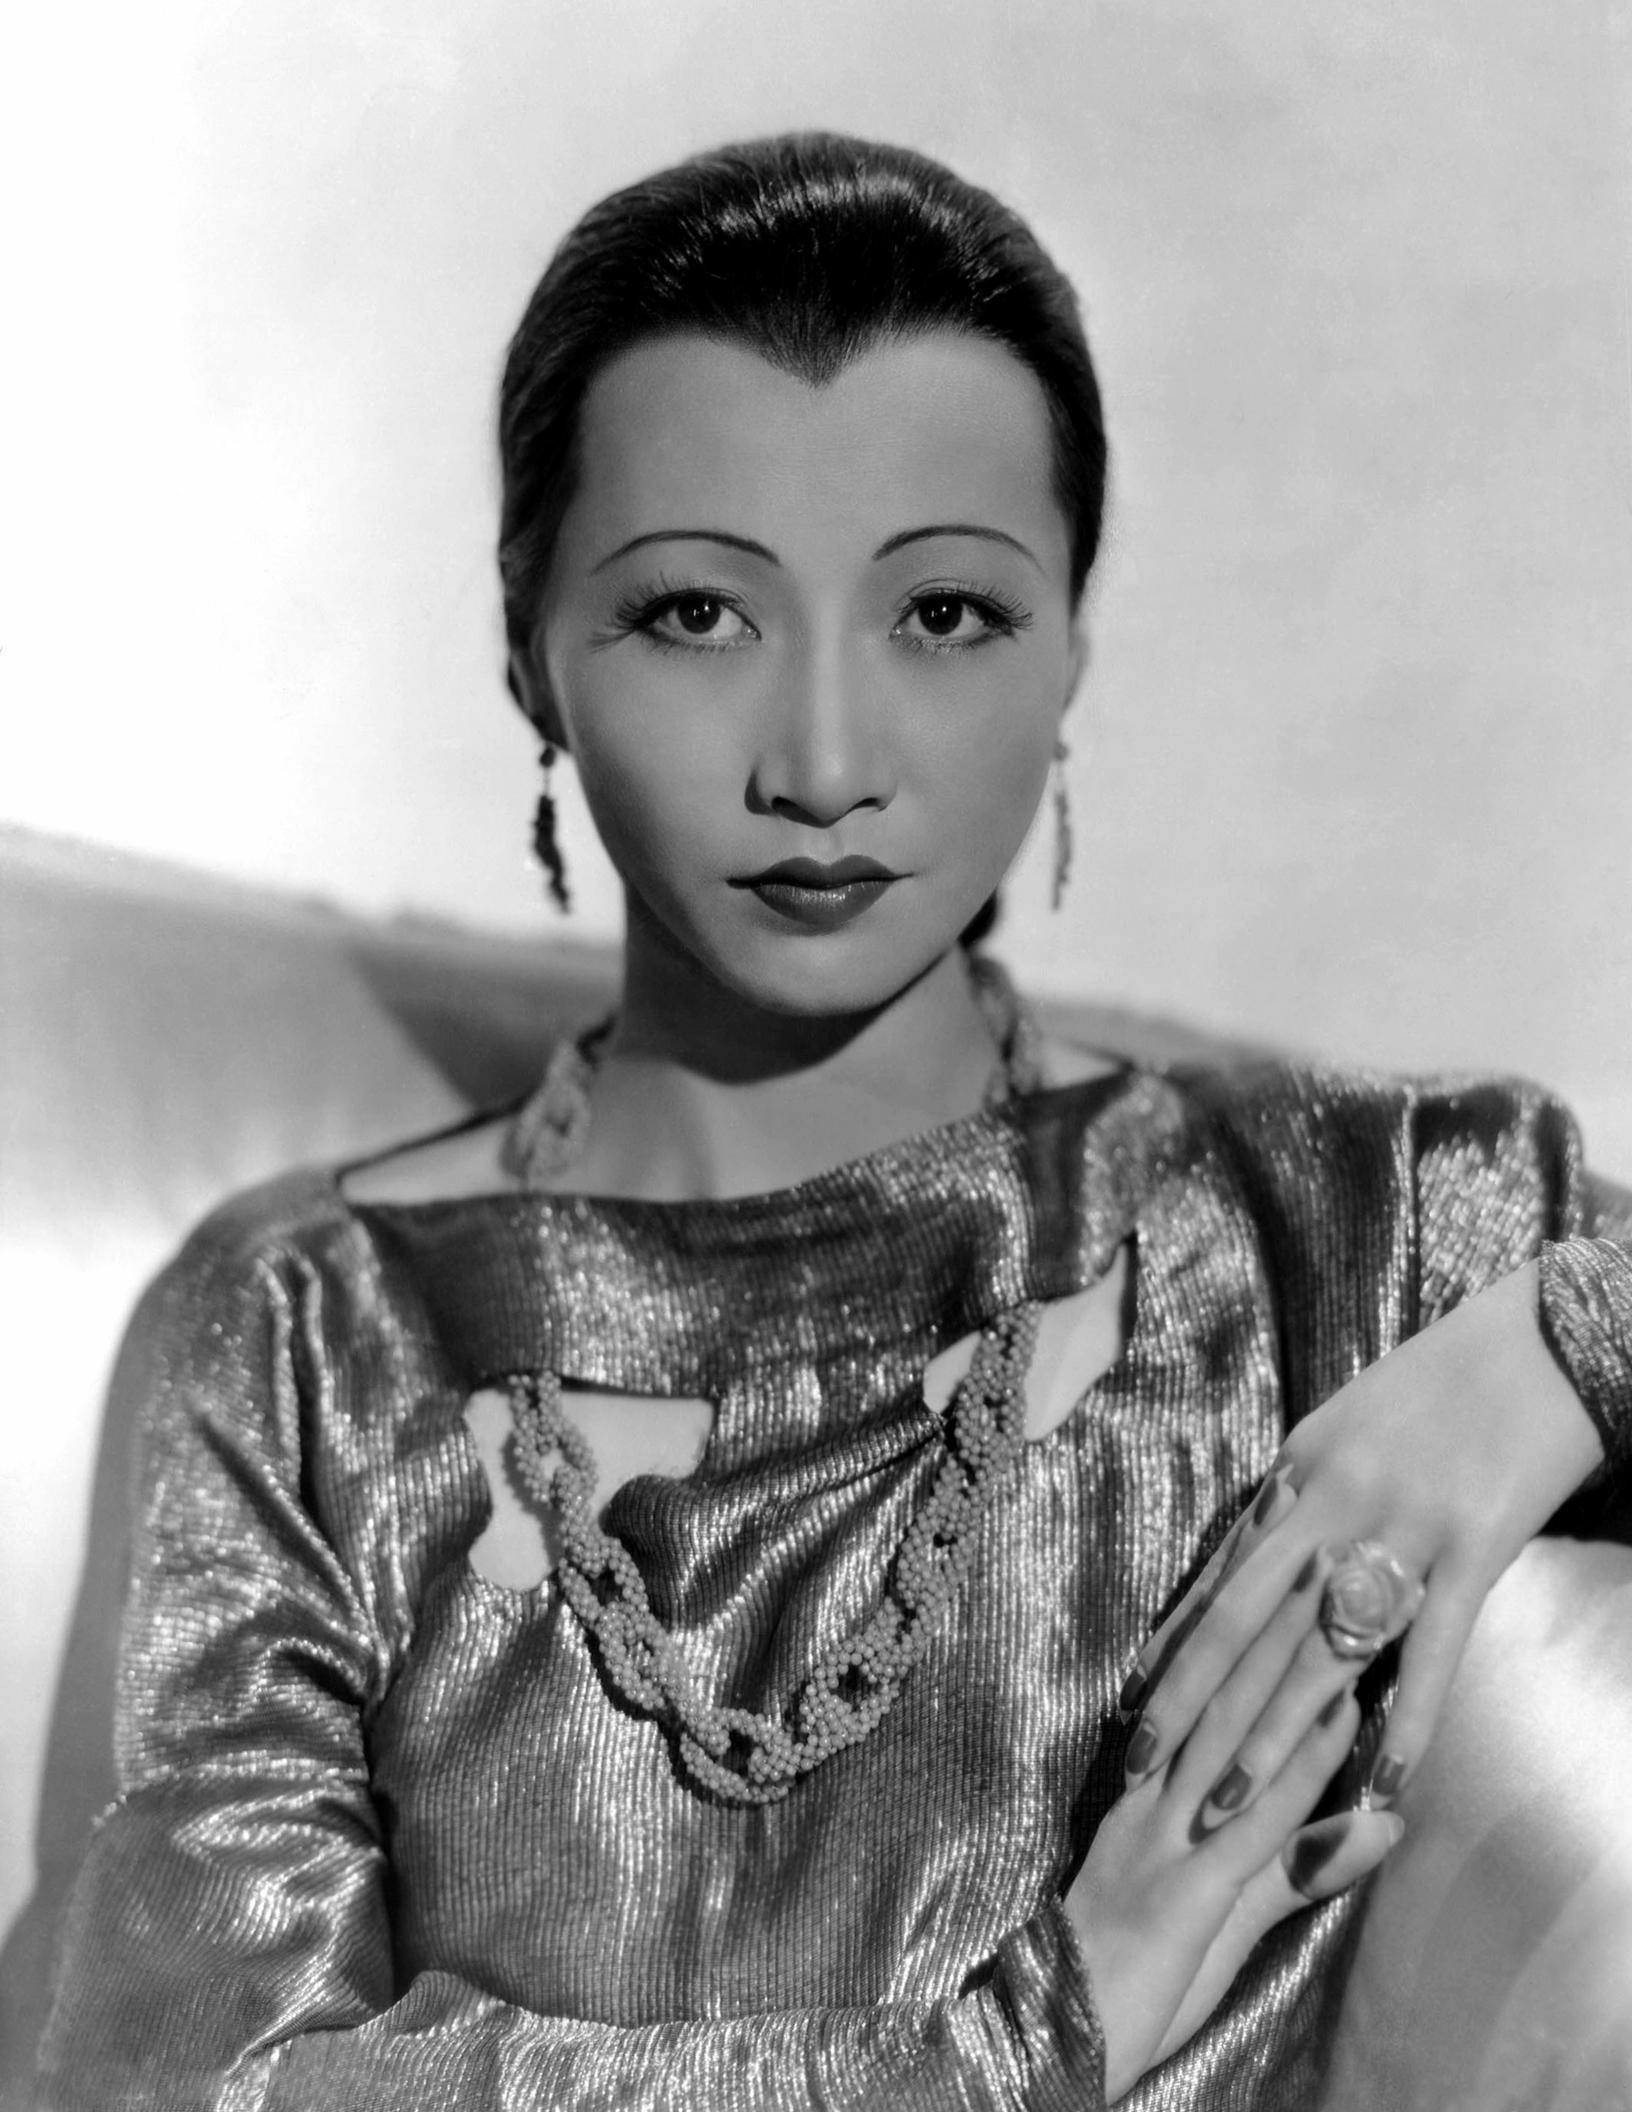 anna may wong husbandanna may wong movies, anna may wong wiki, anna may wong, anna may wong death, anna may wong husband, anna may wong biography, anna may wong quotes, anna may wong photos, anna may wong piccadilly, anna may wong documentary, anna may wong grave, anna may wong imdb, anna may wong youtube, anna may wong images, anna may wong fashion, anna may wong biopic, anna may wong marriage, anna may wong buzzfeed, anna may wong interview, anna may wong society